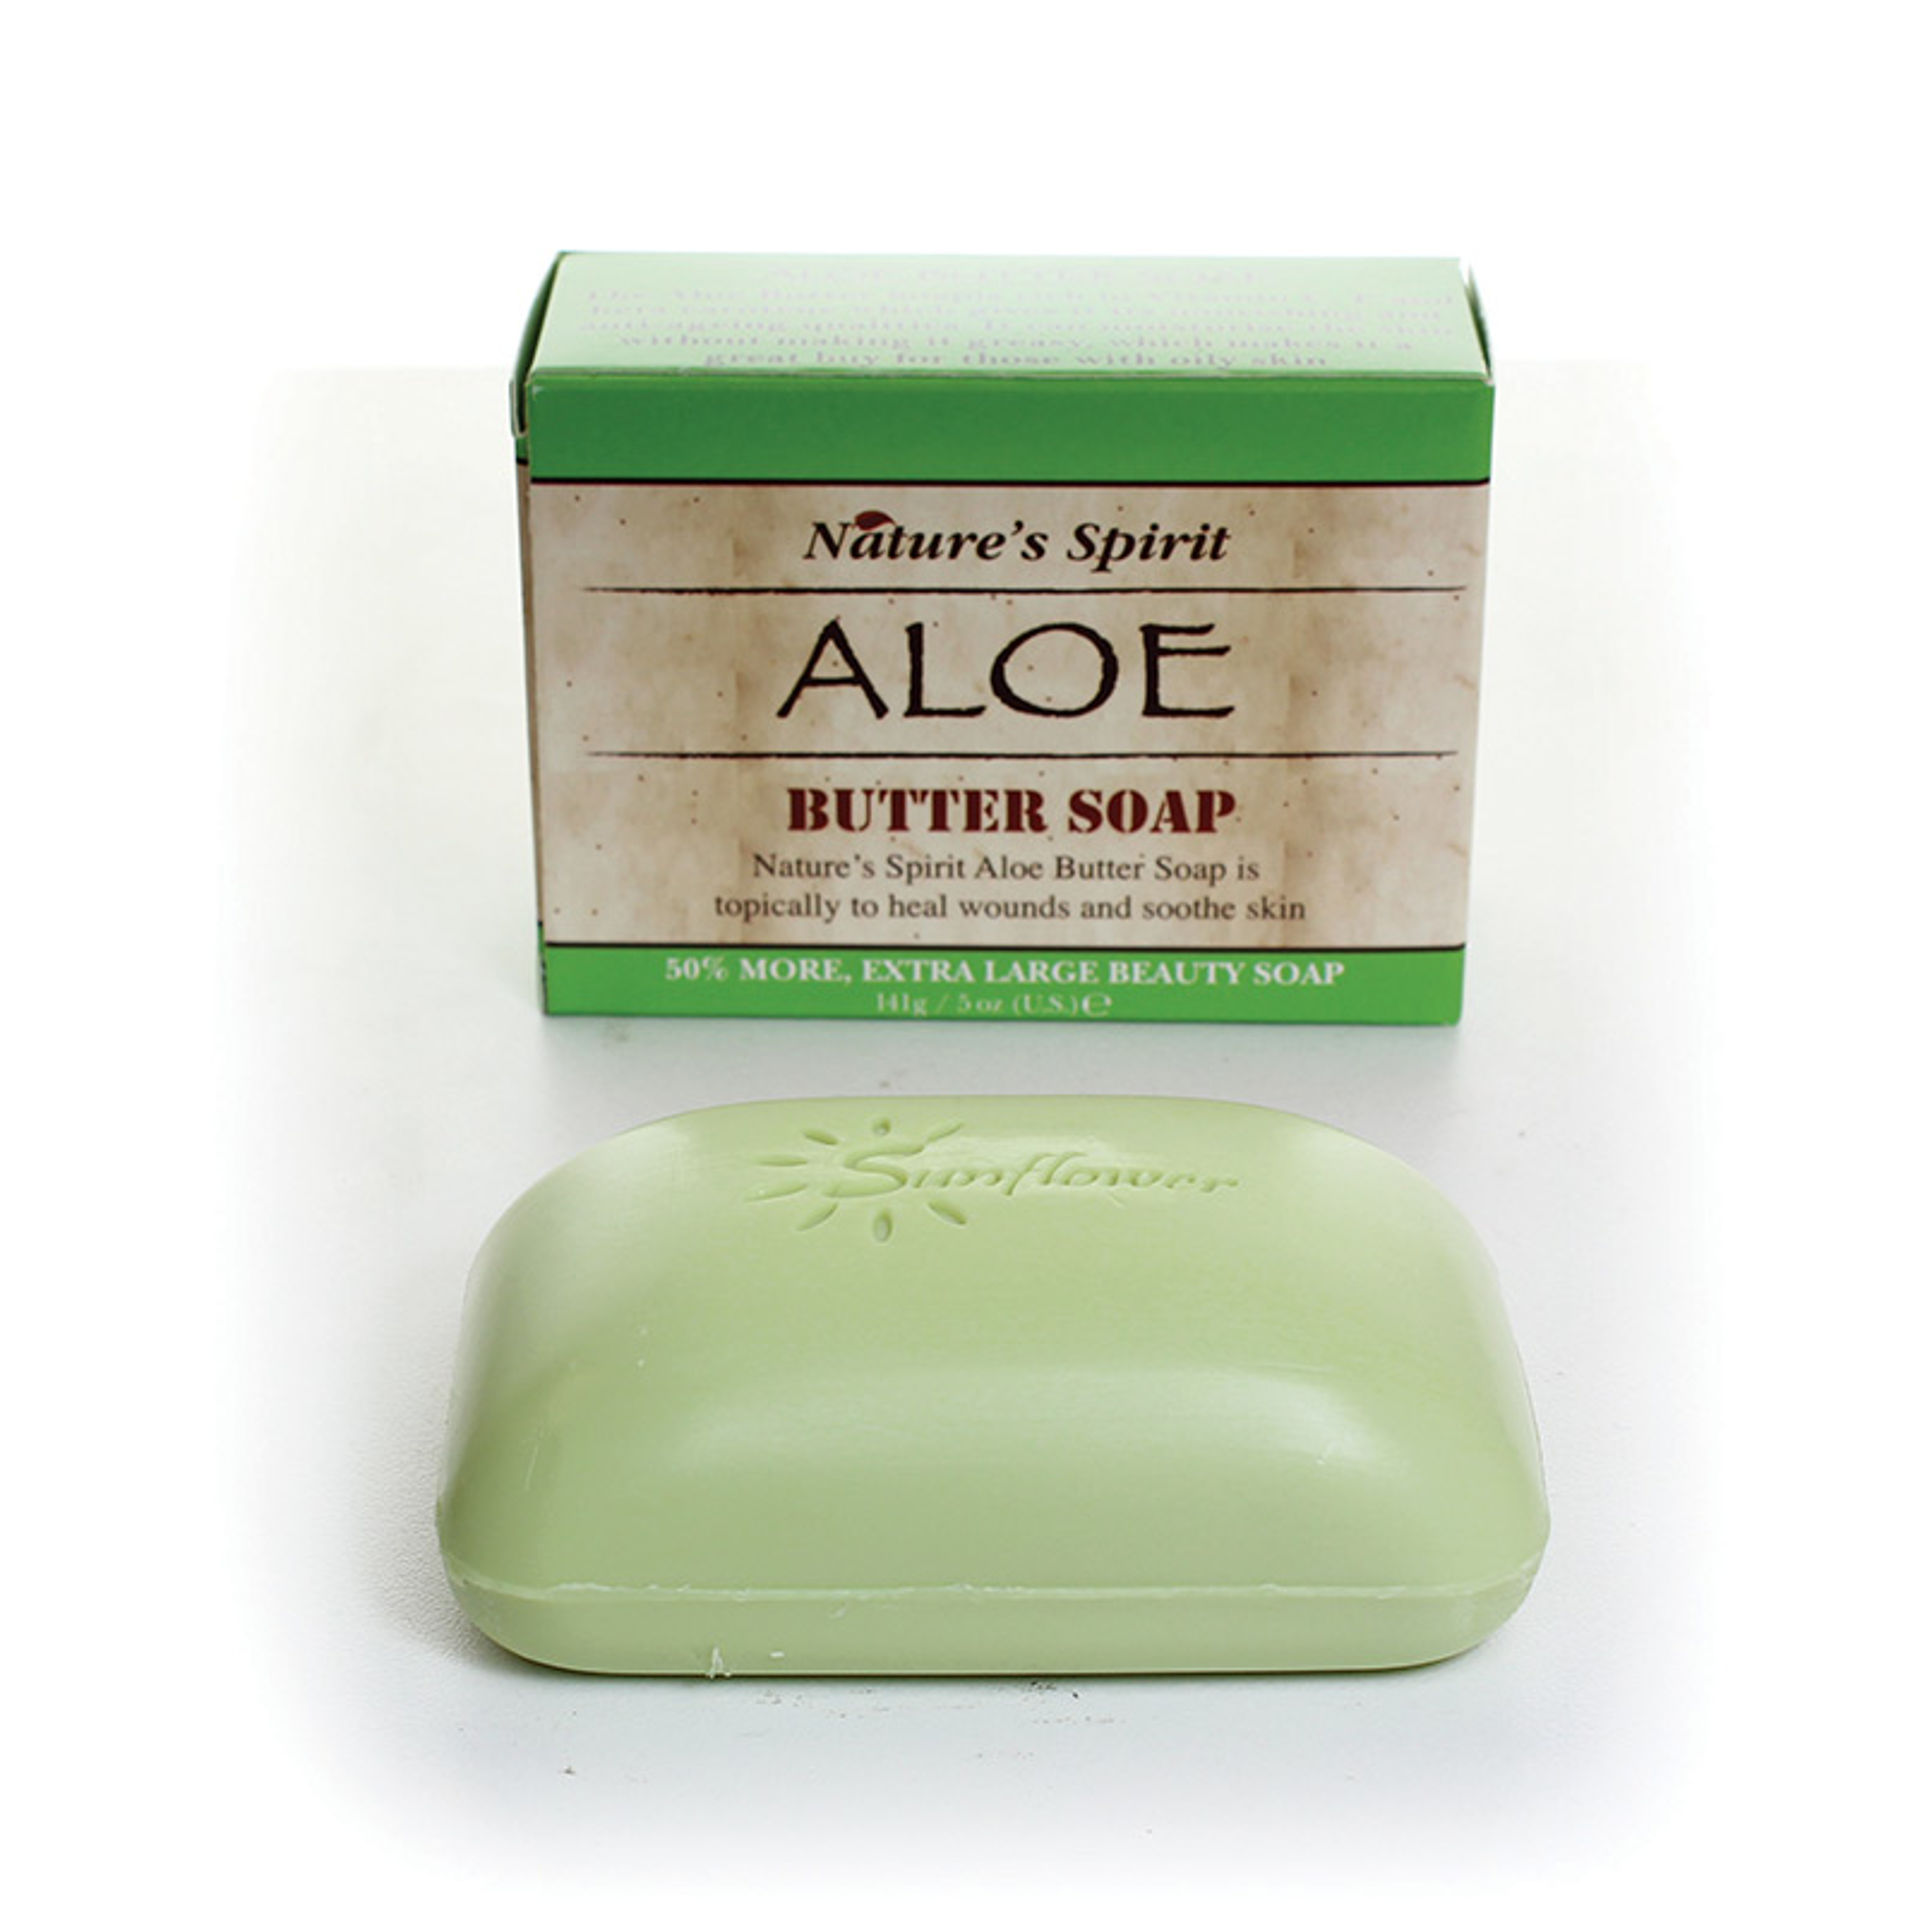 Picture of Aloe Butter Soap - 5 oz.